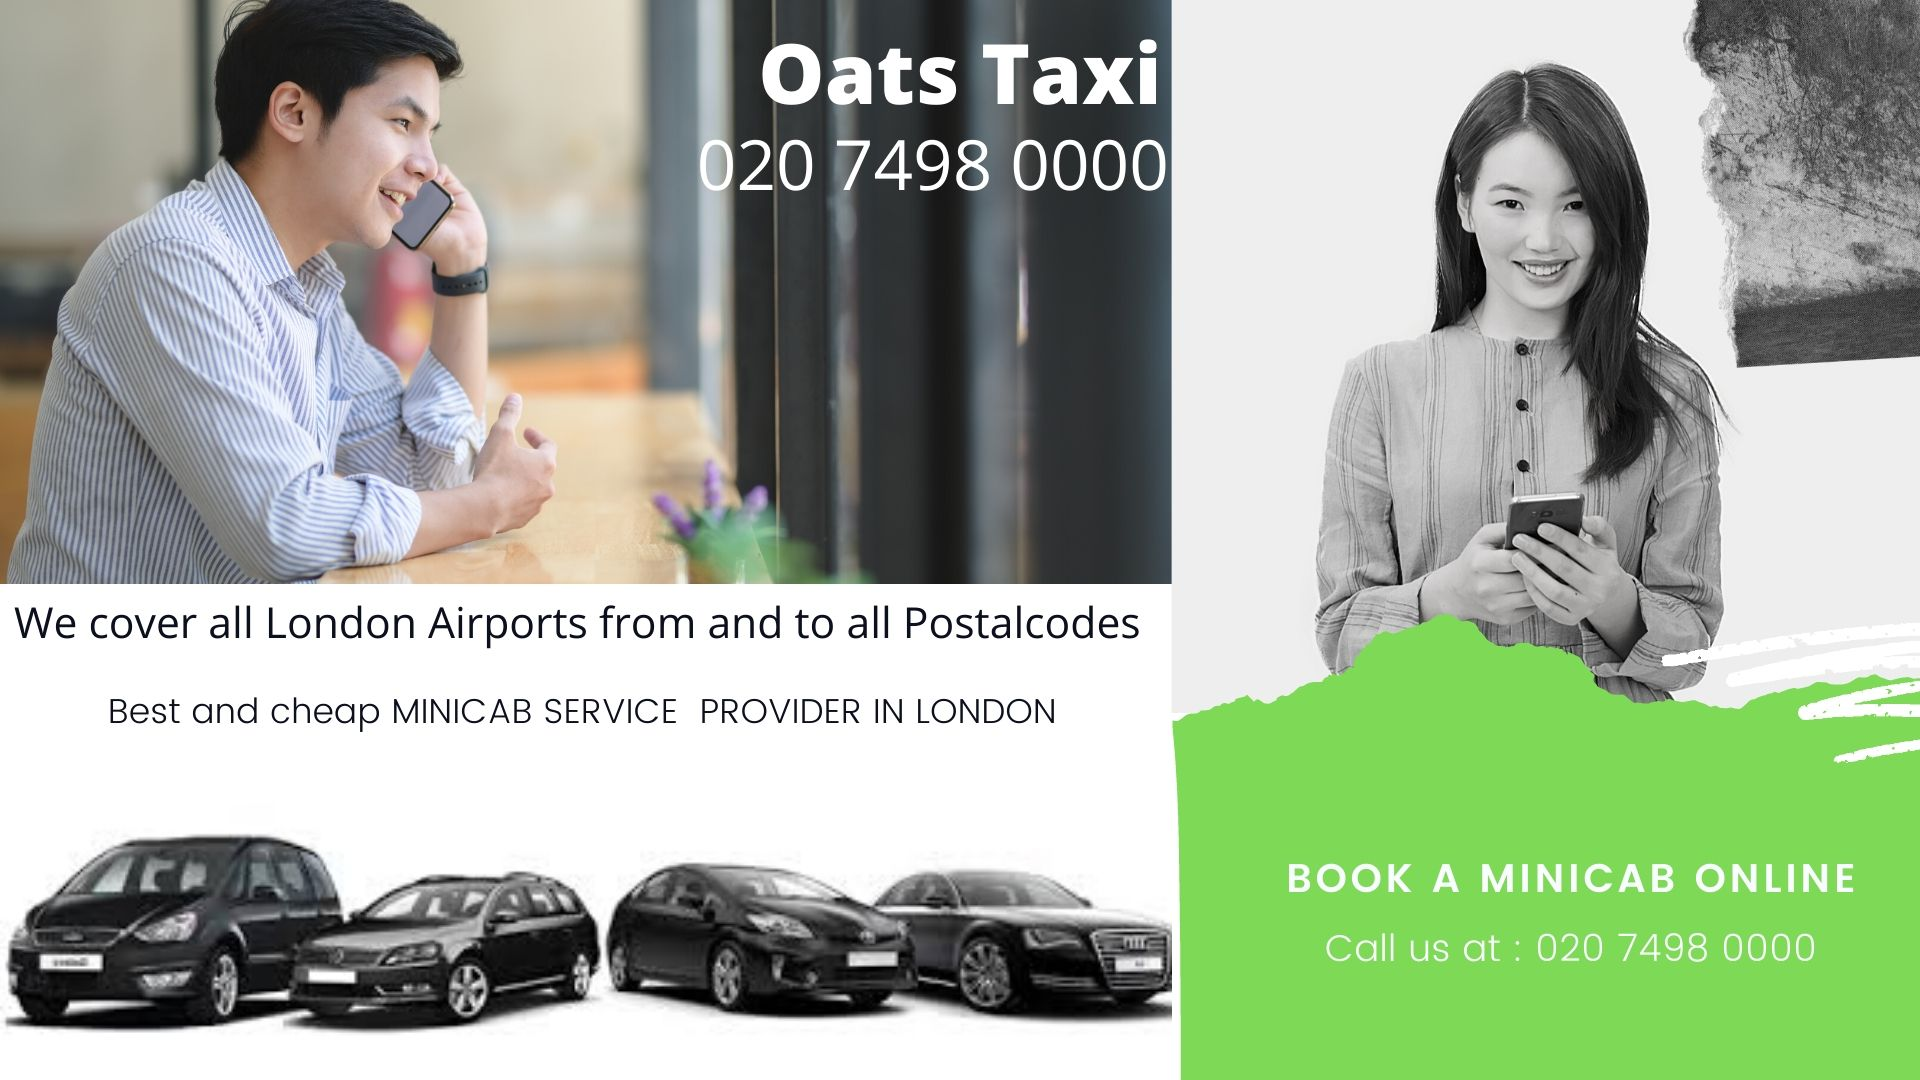 Nearest Minicab Office in Strand | Minicab Gatwick Airport | Call now : 02074980000